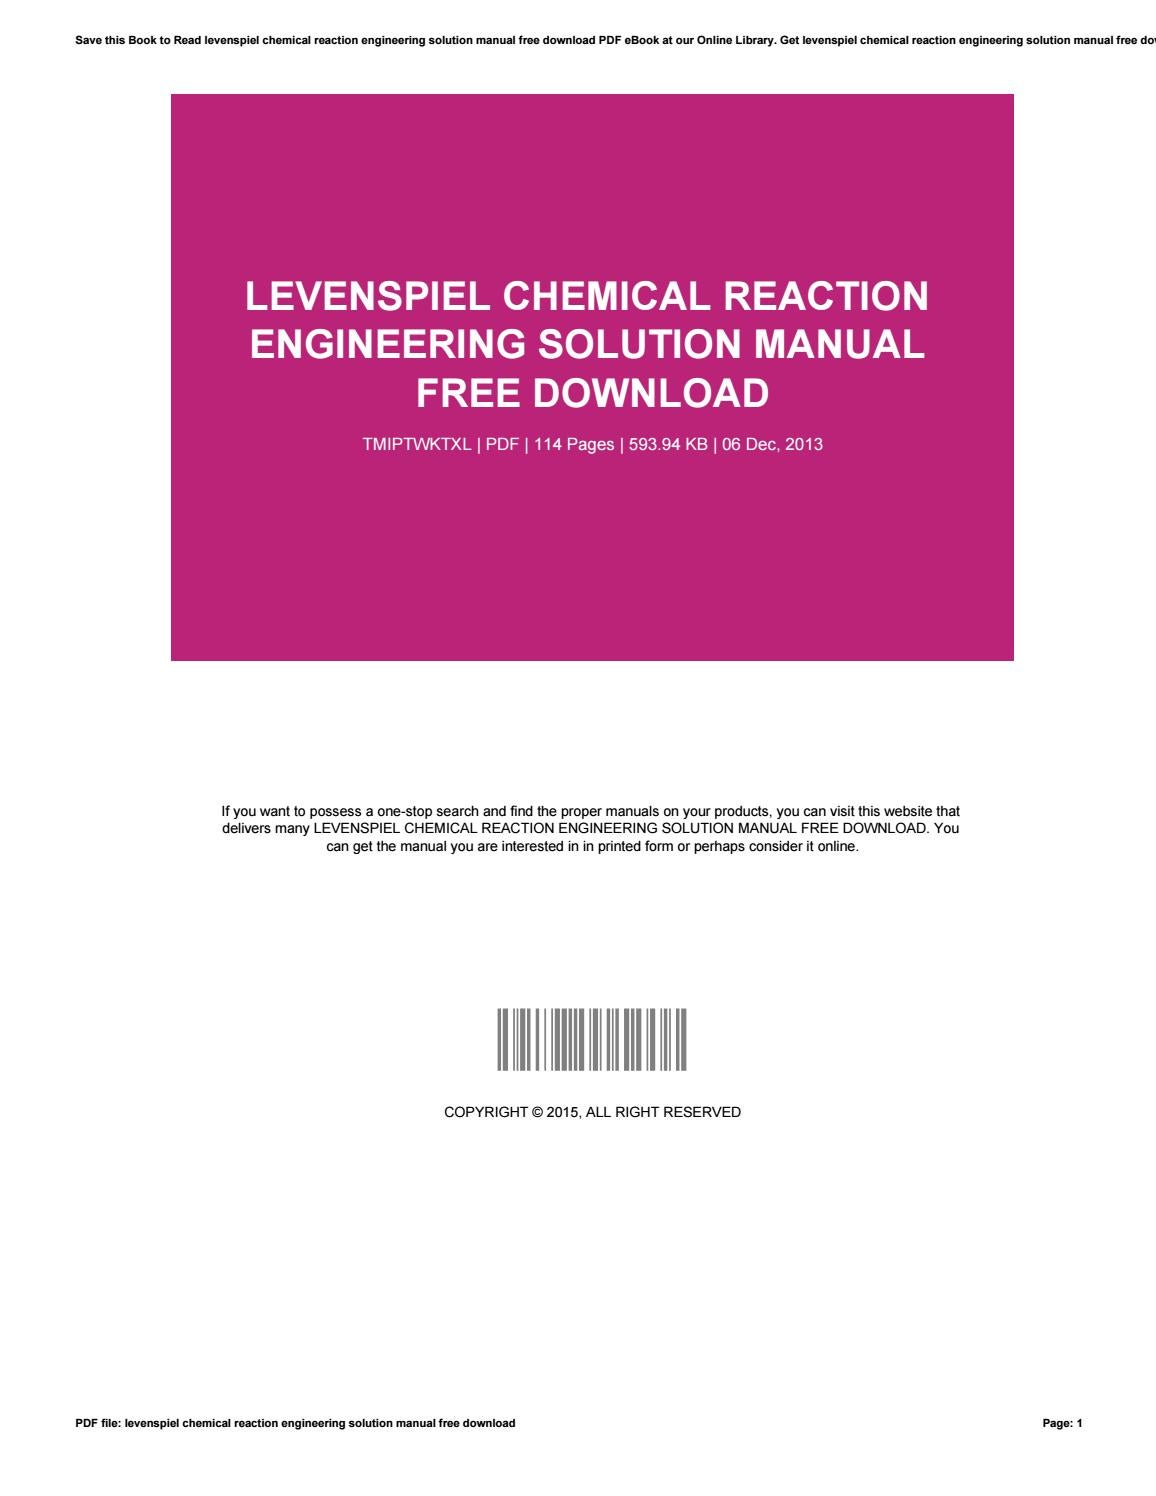 Levenspiel chemical reaction engineering solution manual free ... on i-94 form blank, i-94 form example, i-94 uscis forms, i-94 card, i-94 print out,